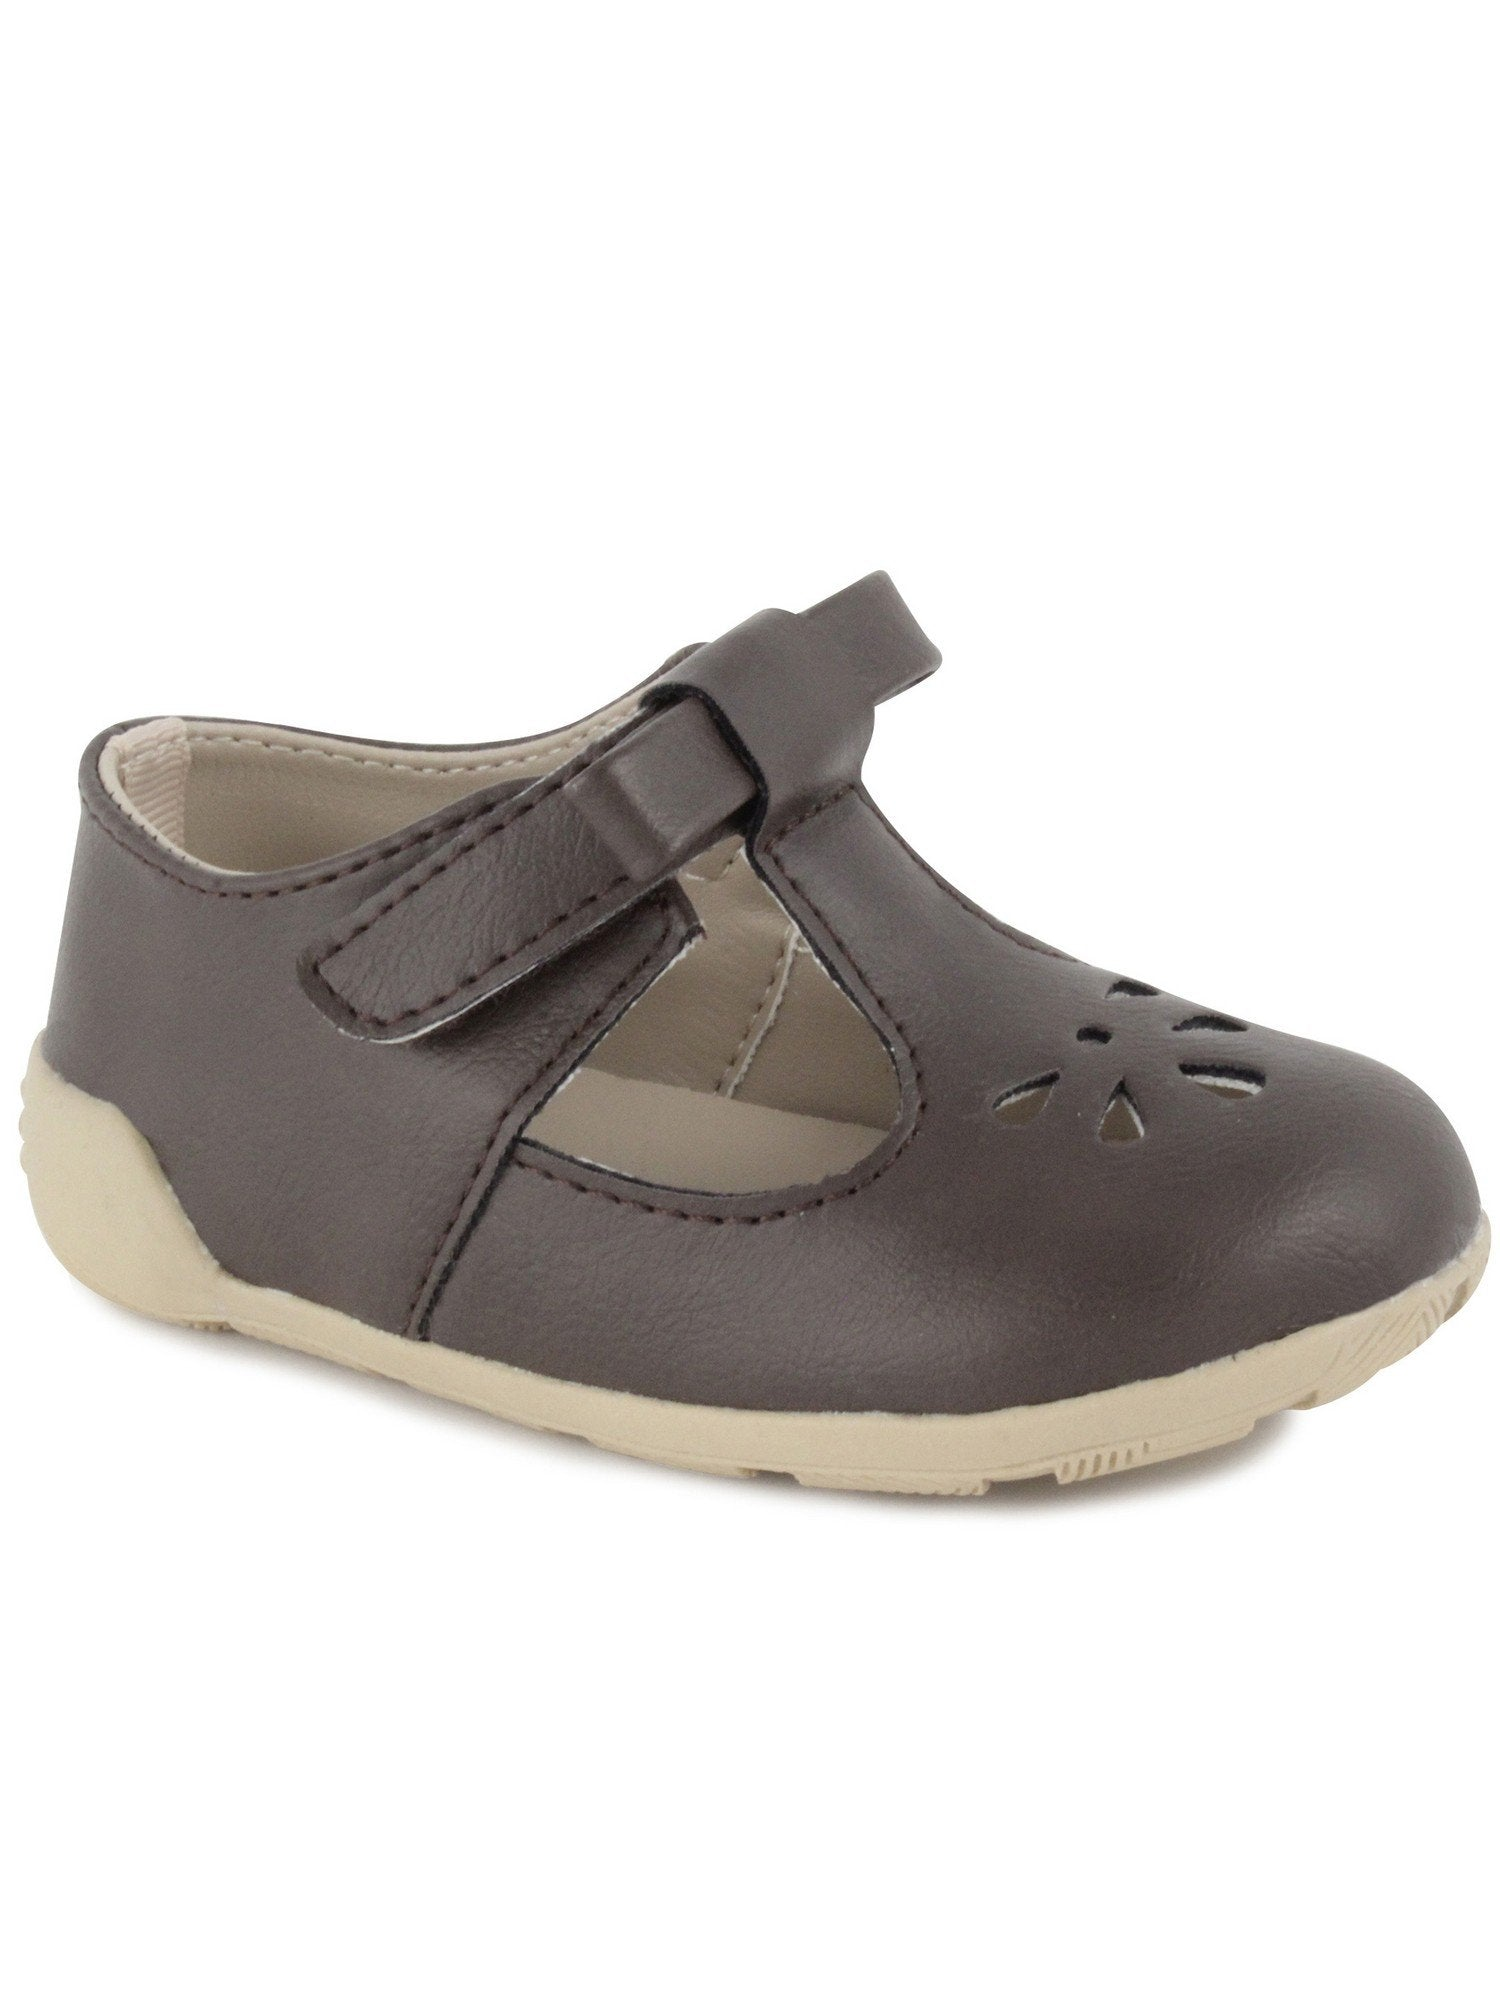 Brynna Classic Brown T-Strap Perforated Maryjane